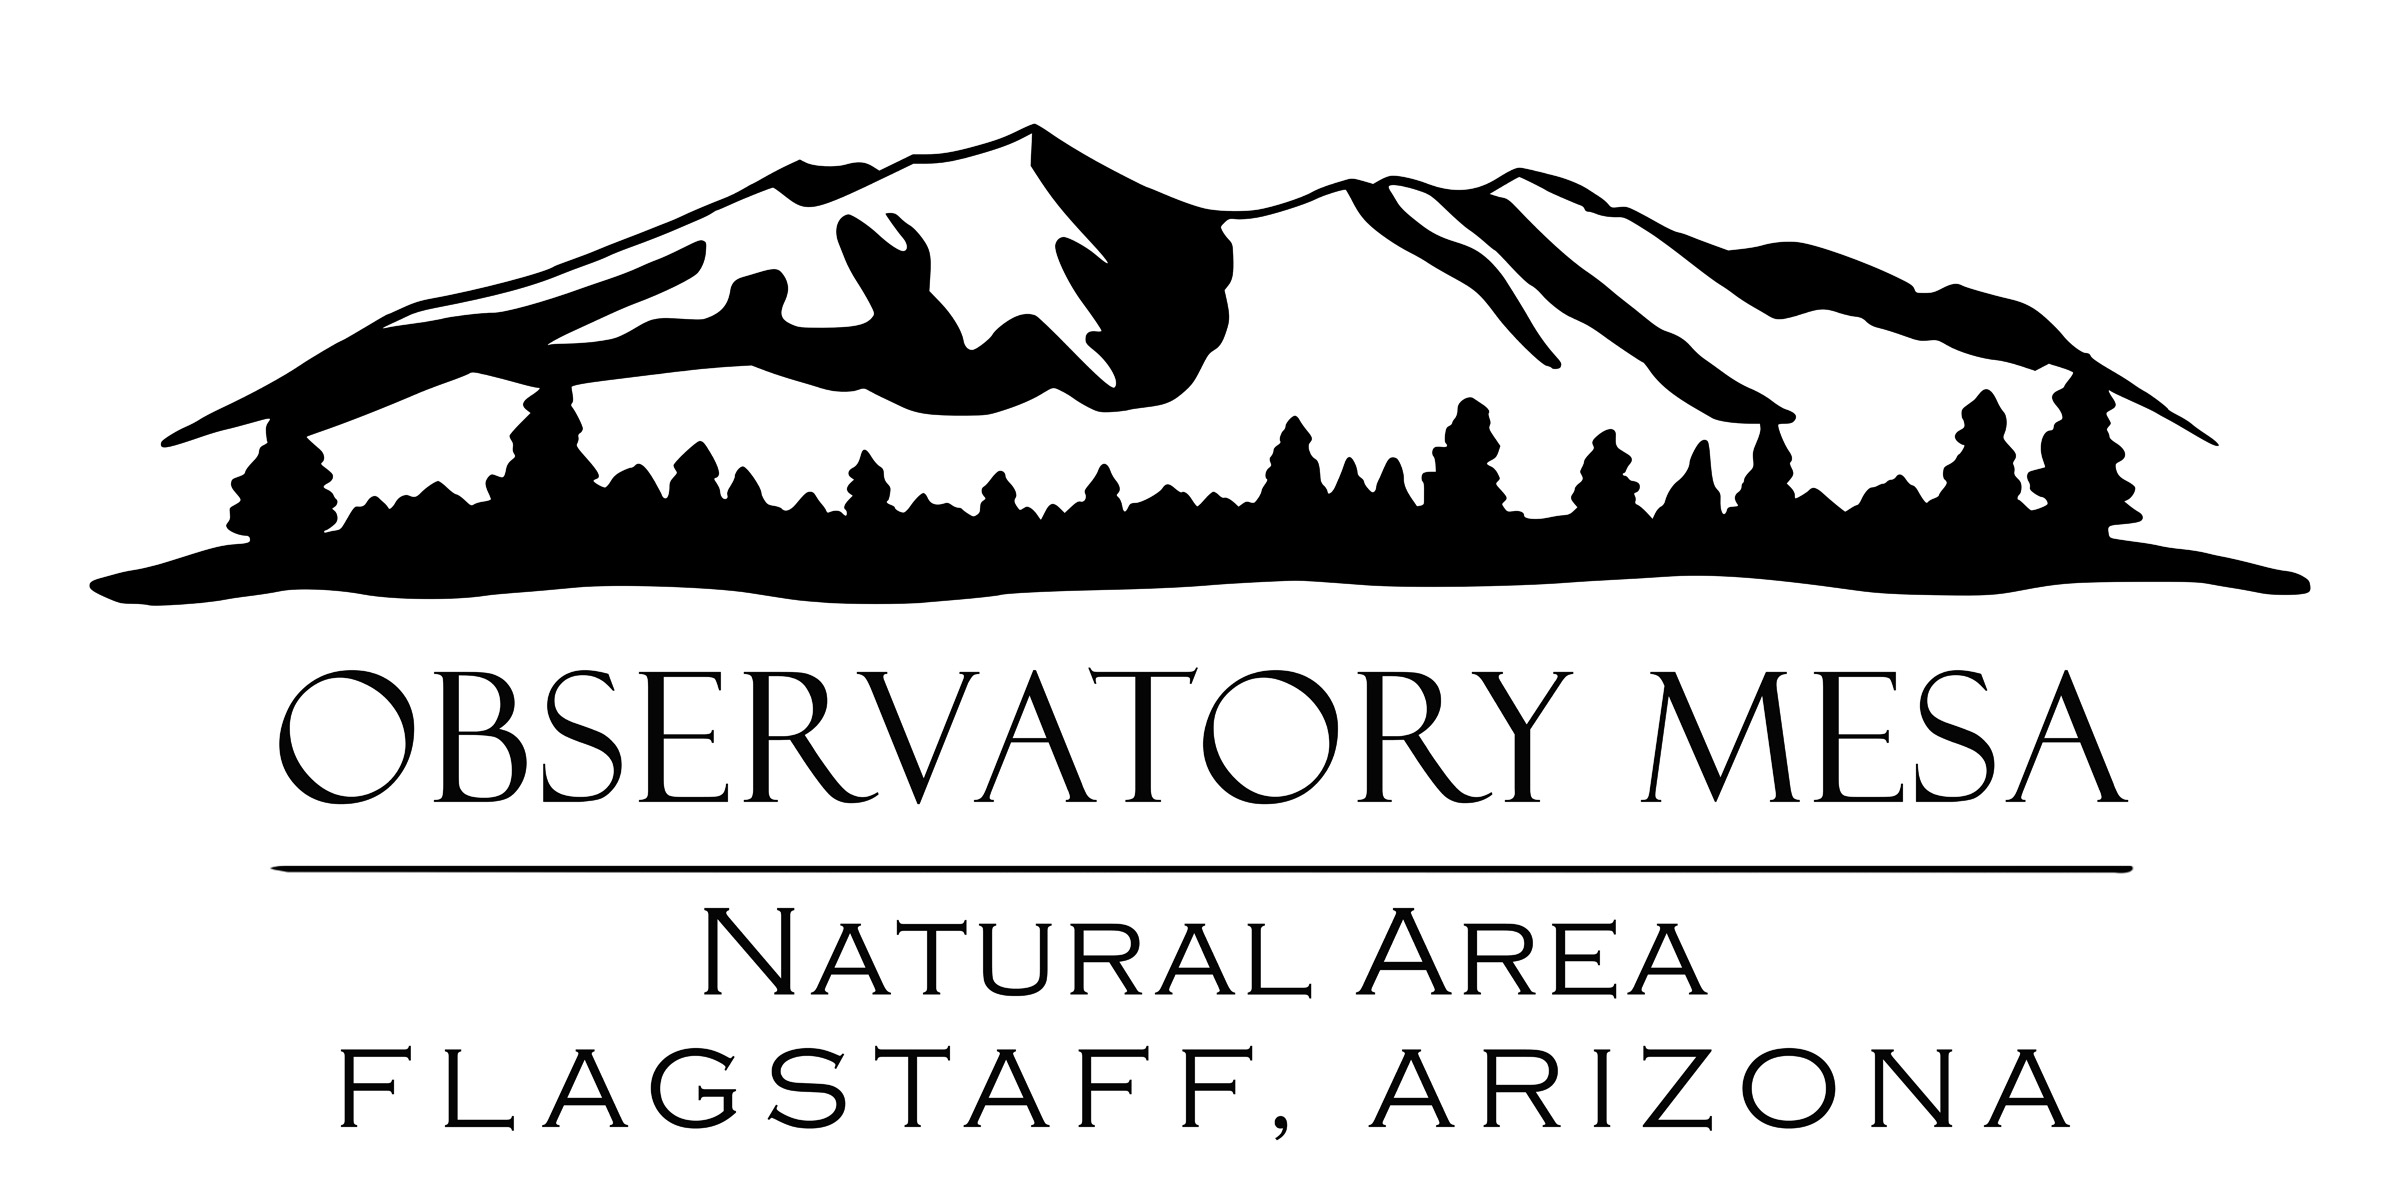 Observatory Mesa Natural Area Flagstaff, Arizona